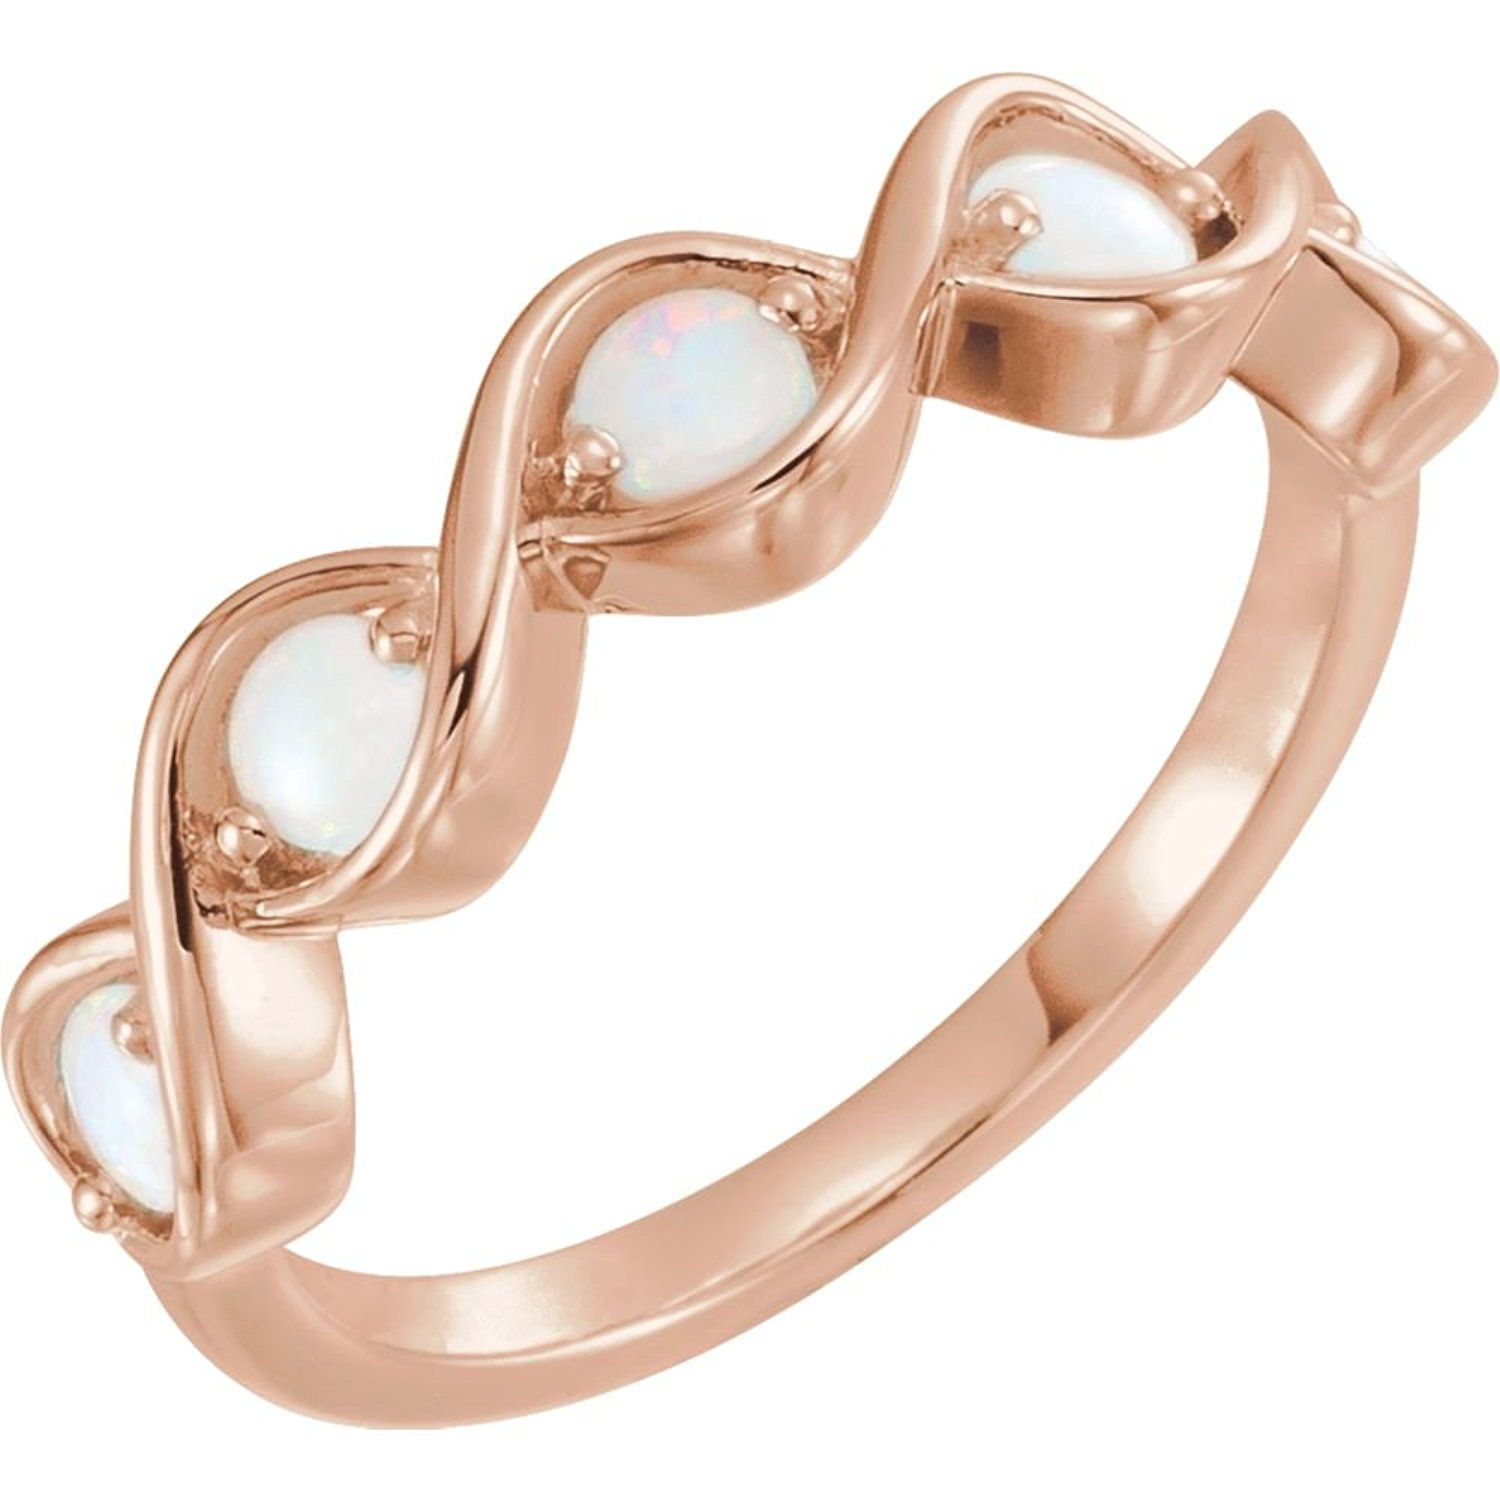 Bonyak Jewelry 14k Rose Gold Opal Stackable Ring - Size 7